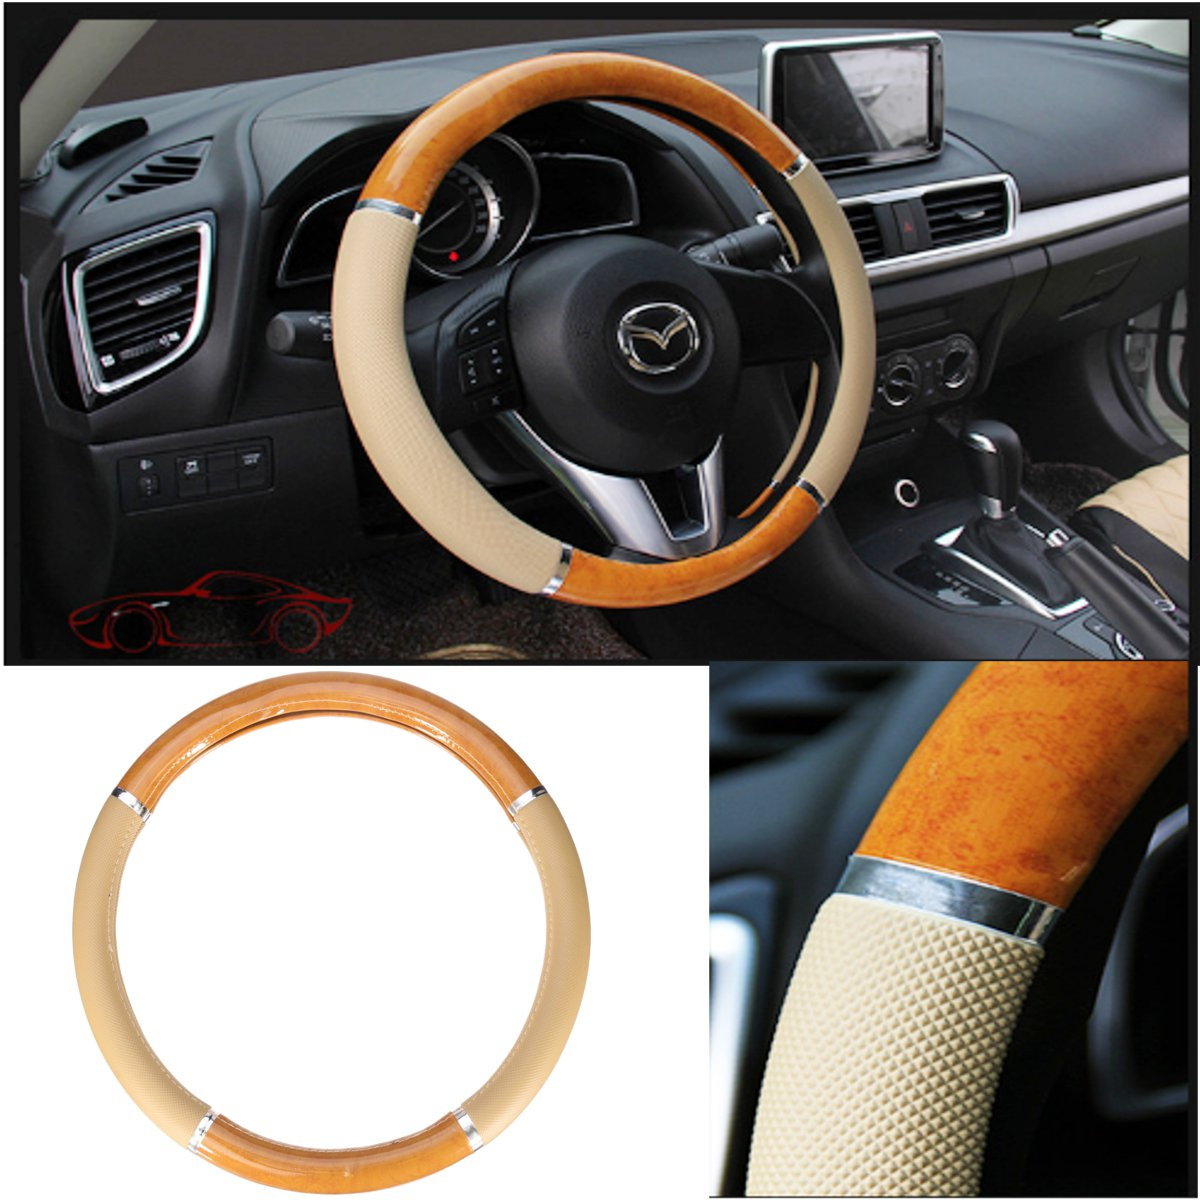 Steering Wheel Cover Luxury Nonslip Wood PU Leather for Car Truck SUV 38cm